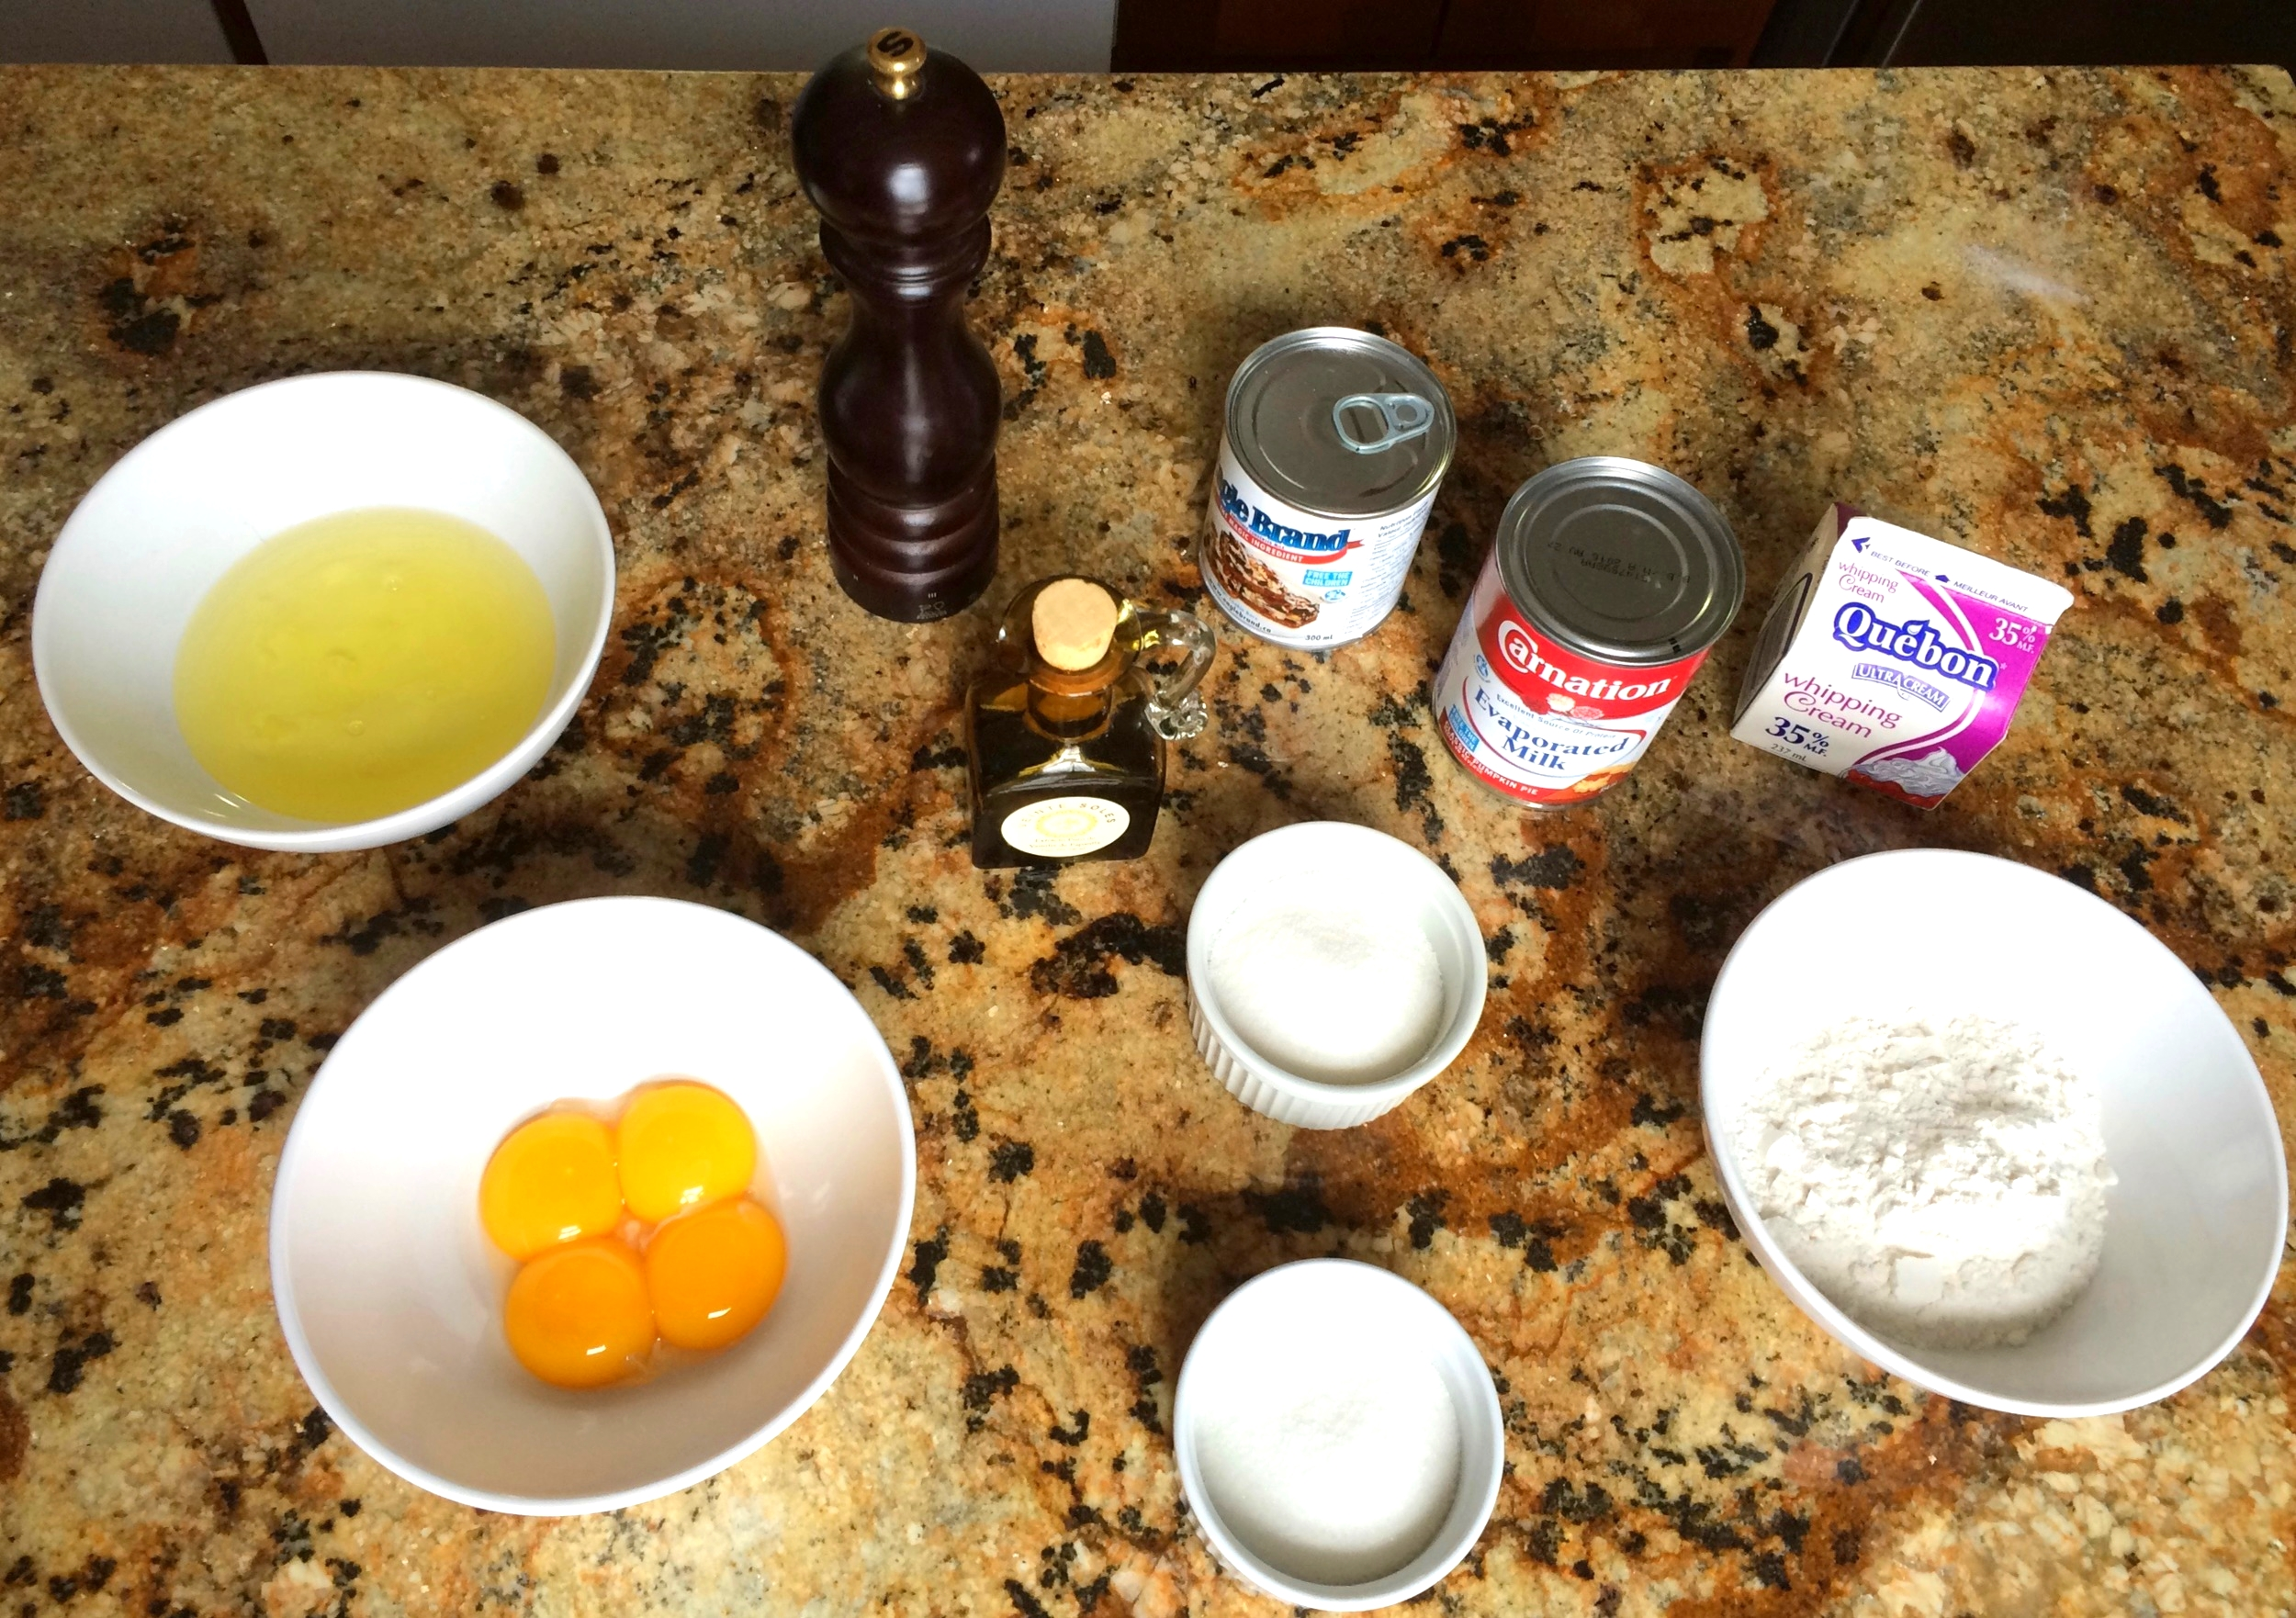 Notice how the eggs and sugar are divided. This will allow the egg whites to reach room temperature. The sugar is also divided because we'll use it in different components.